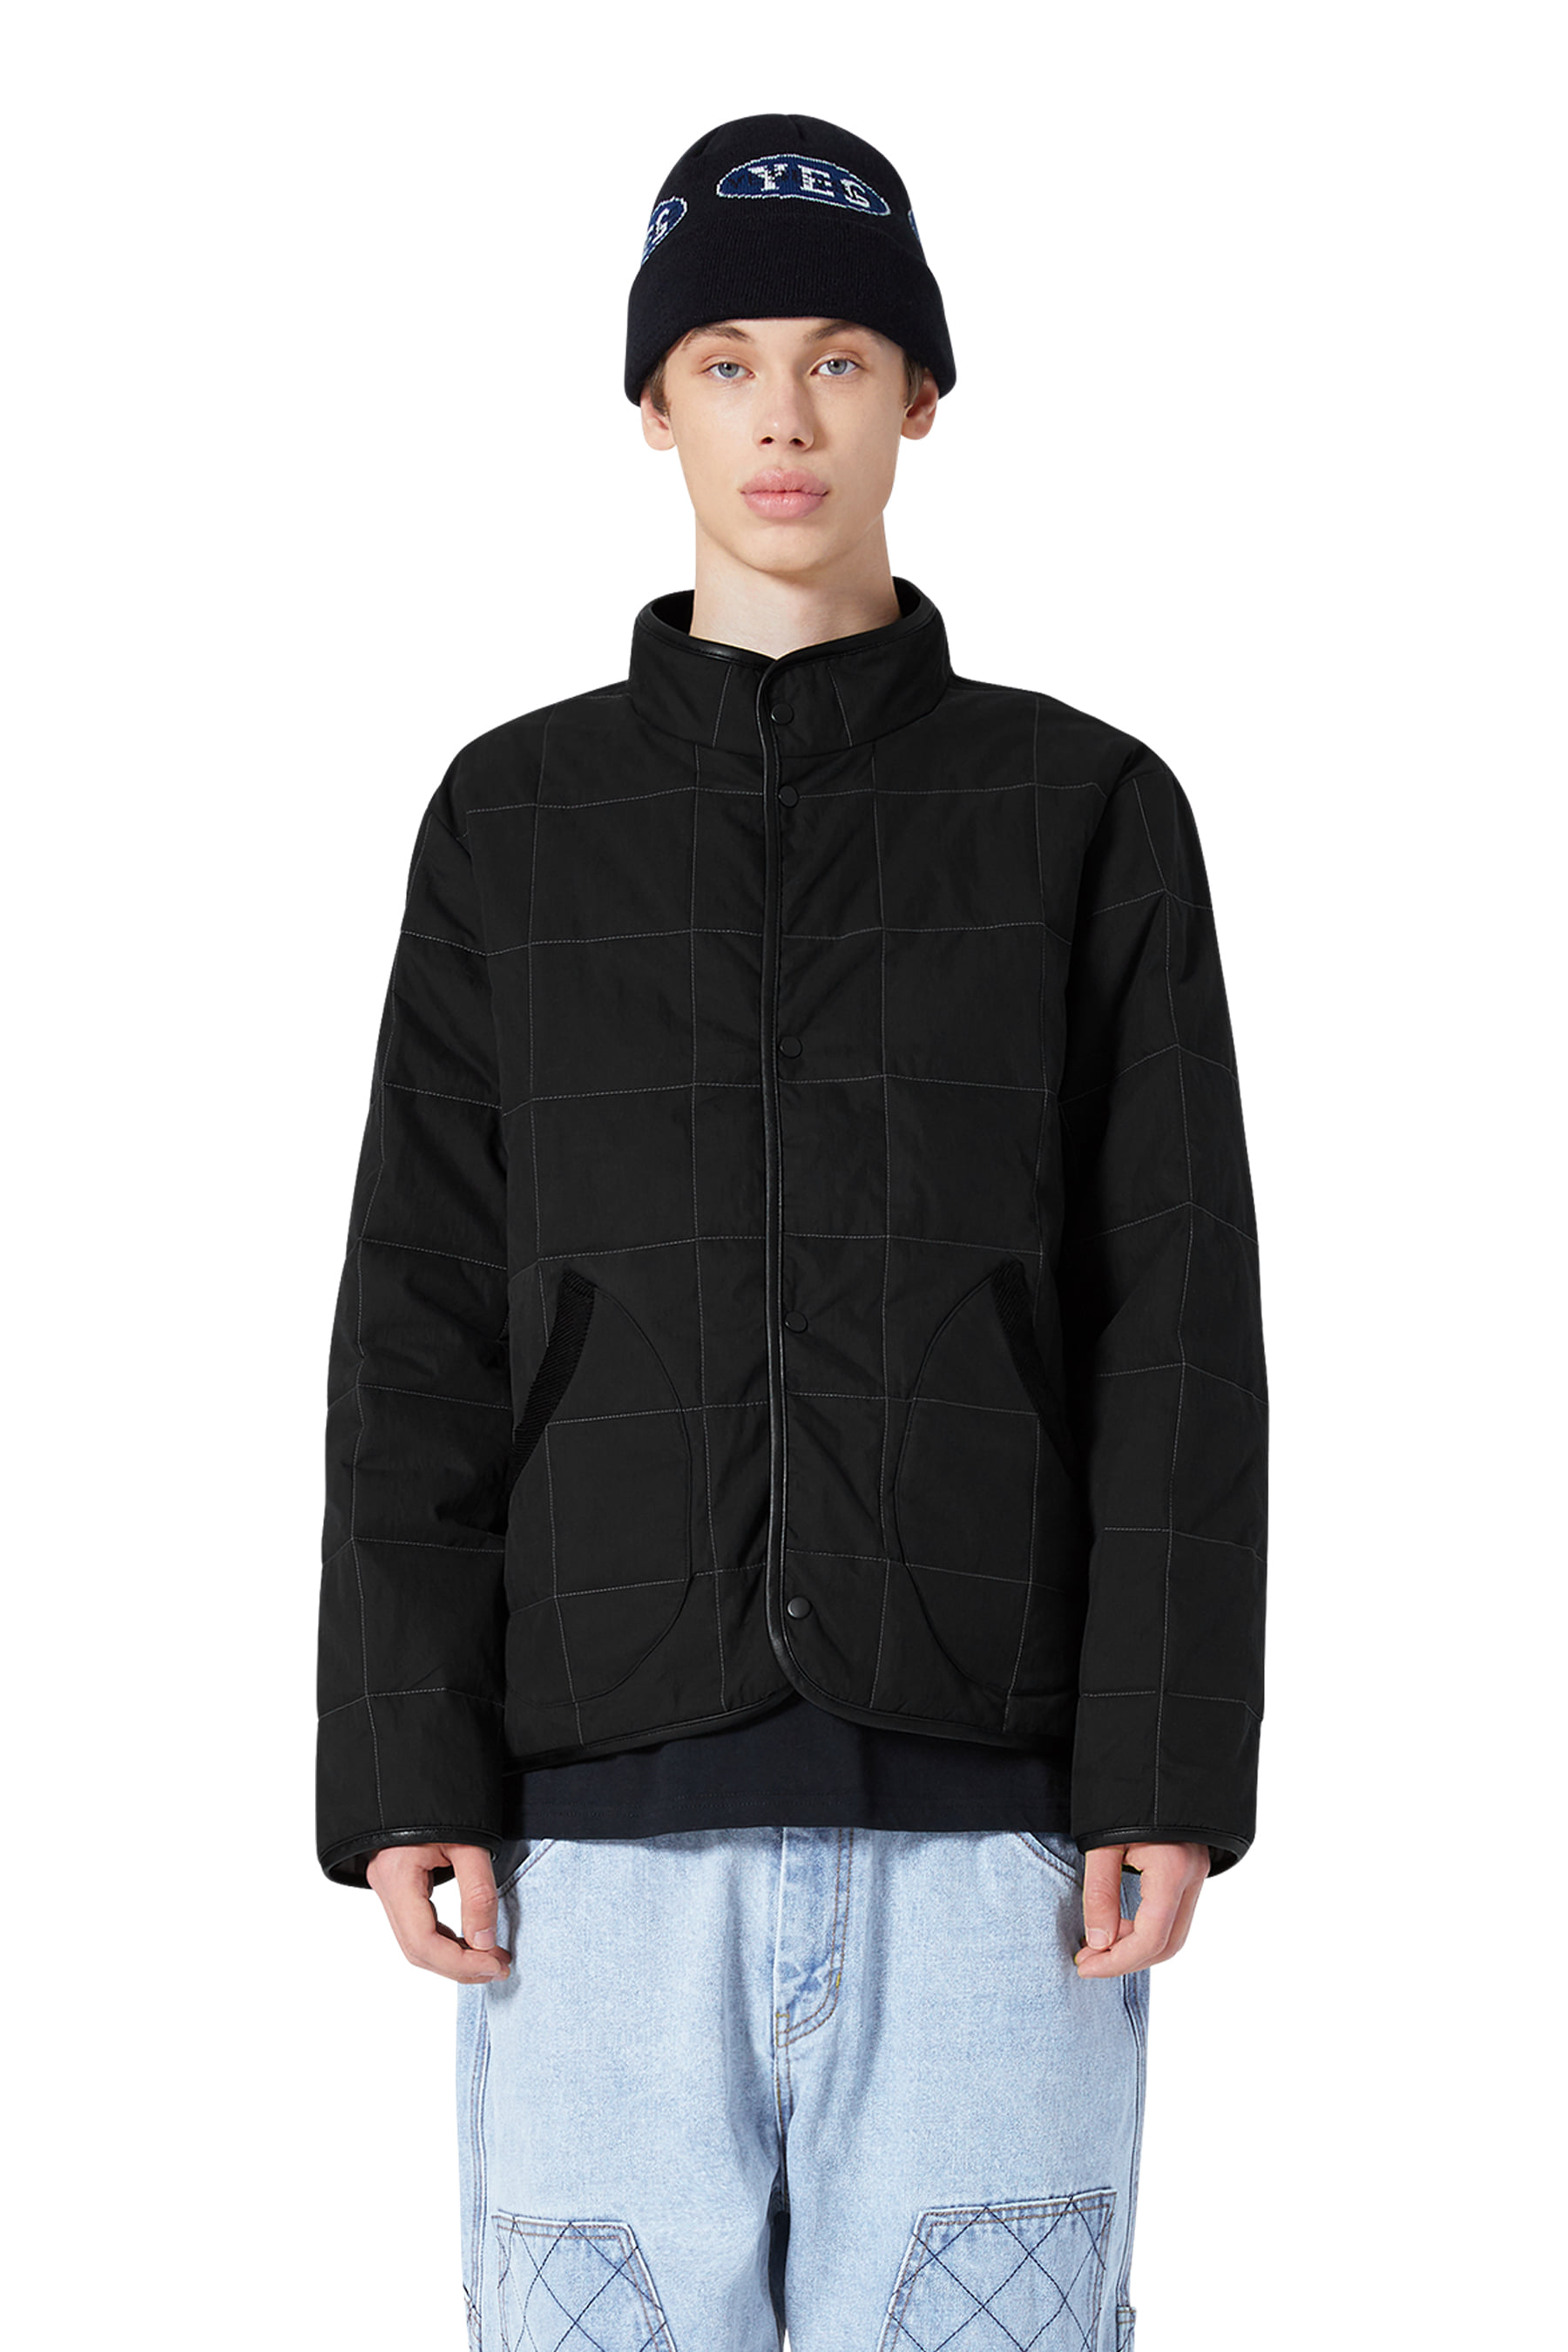 Y.E.S Padded Jacket Black